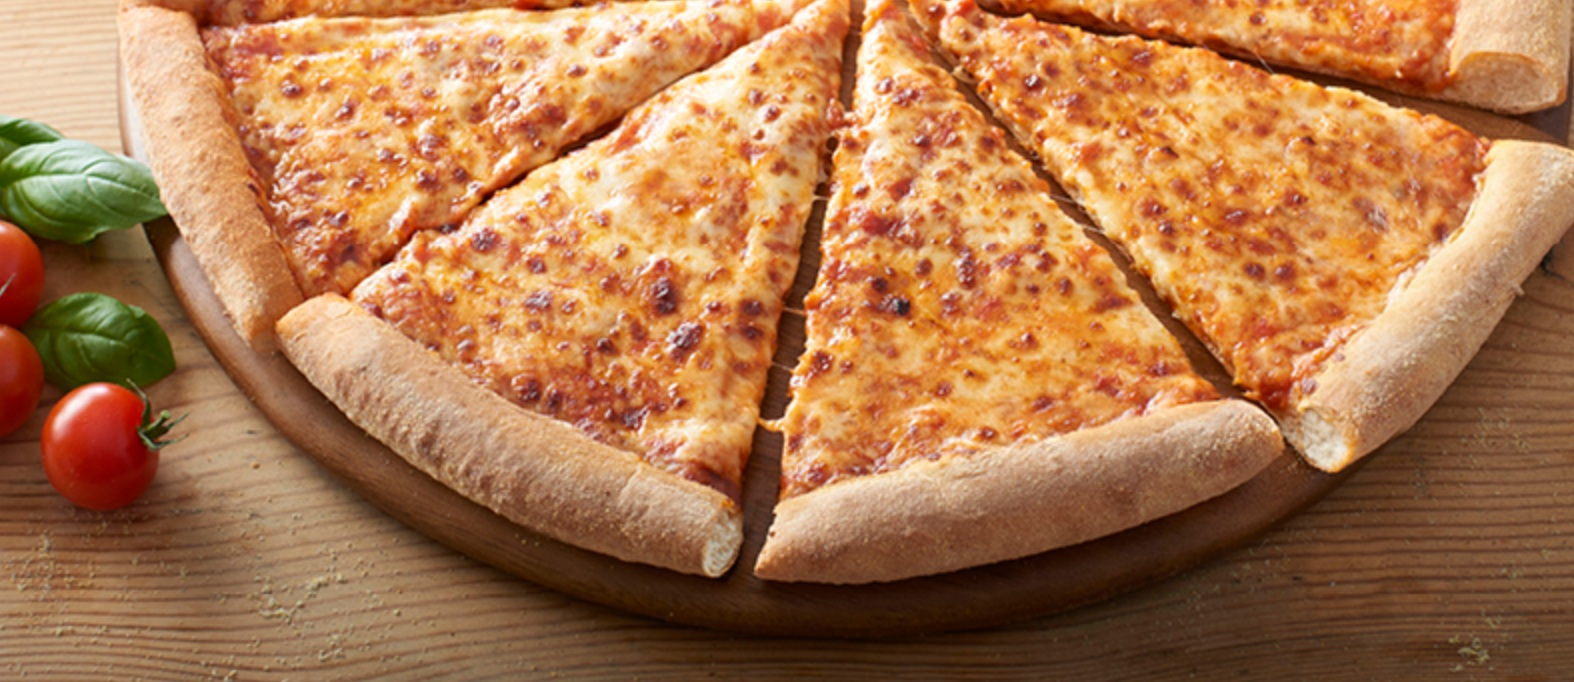 Cheese and tomato pizza from Domino's